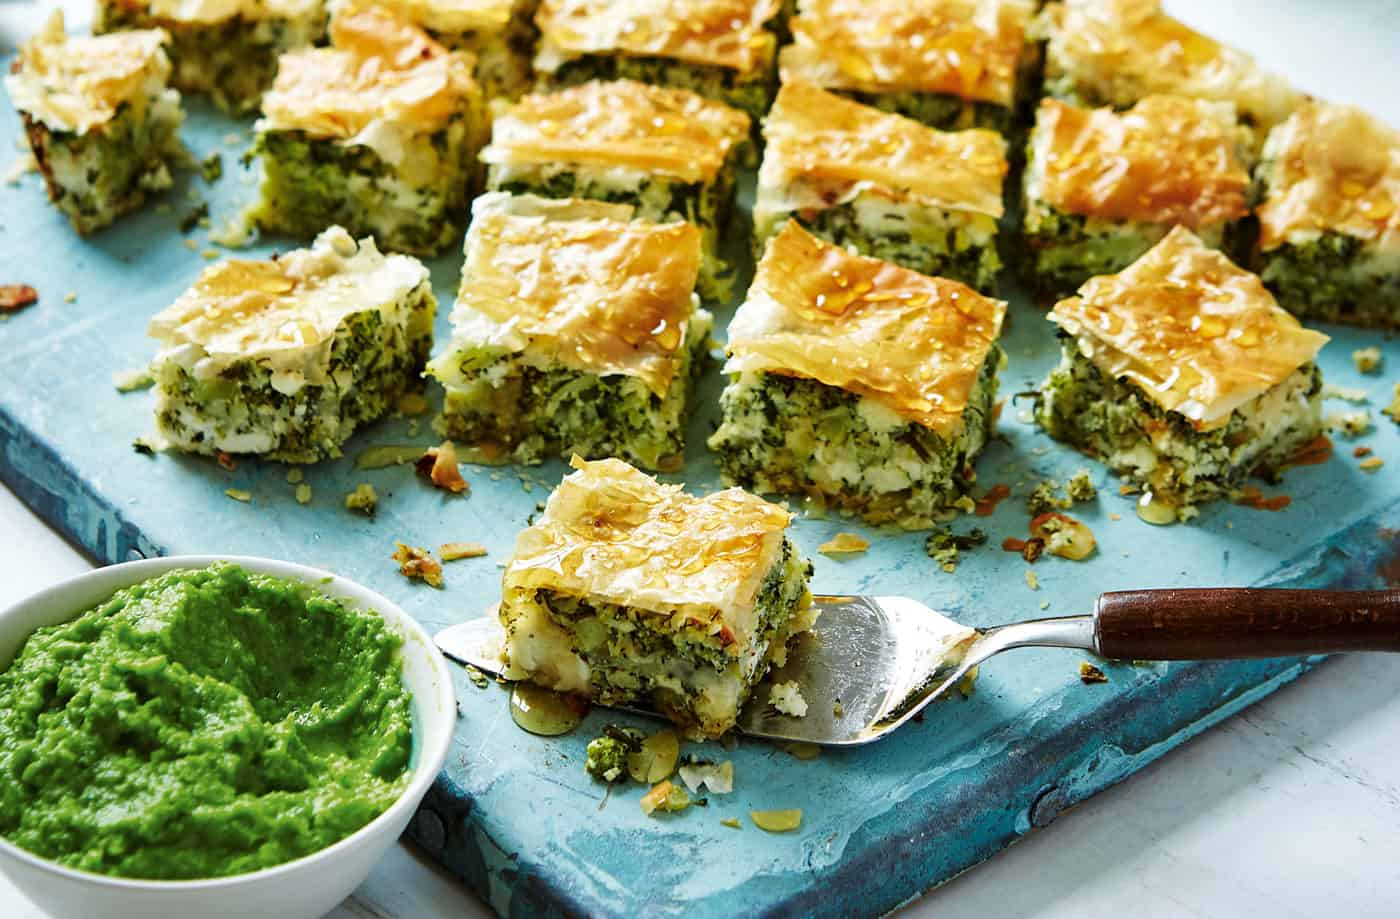 Healthy and tasty 13 delicious recipes for broccoli enthusiasts 4 broccoli feta baklava forumfinder Image collections